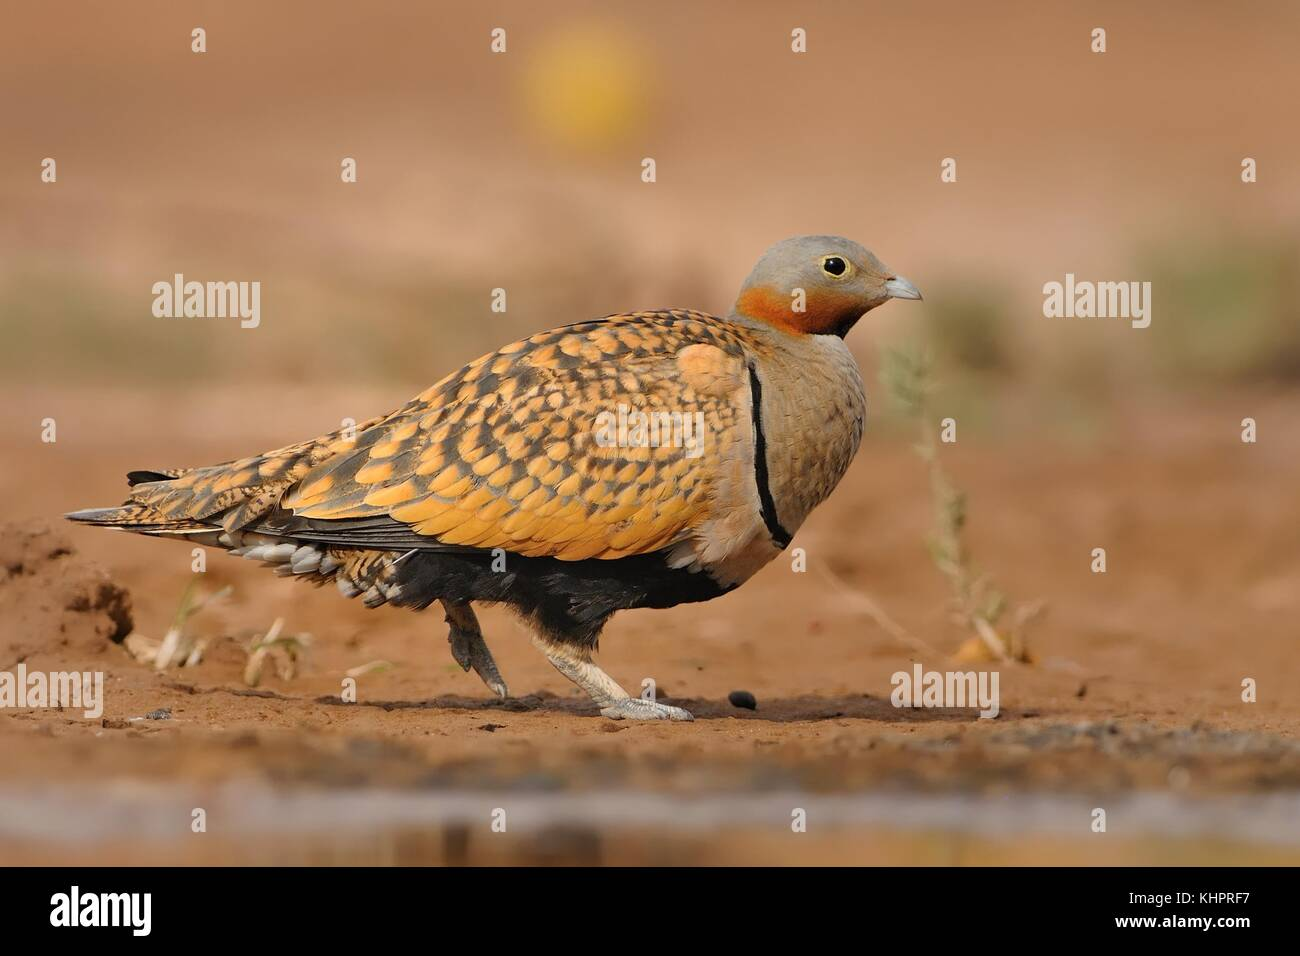 The male of Black-bellied Sandgrouse (Pterocles orientalis) sitting next to the desert pool to drink water from - Stock Image